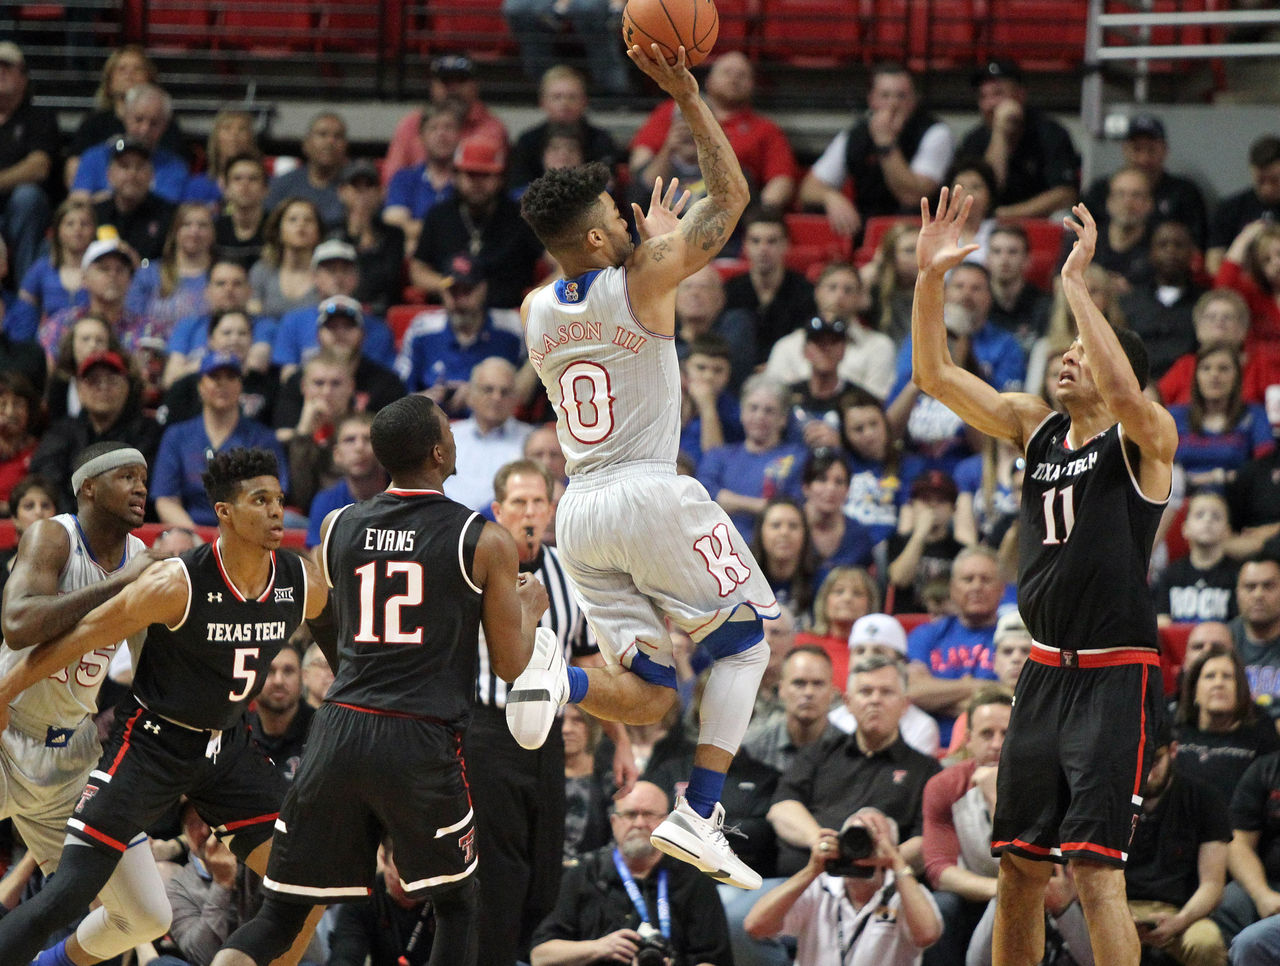 Cropped_2017-02-11t202122z_1952835099_nocid_rtrmadp_3_ncaa-basketball-kansas-at-texas-tech